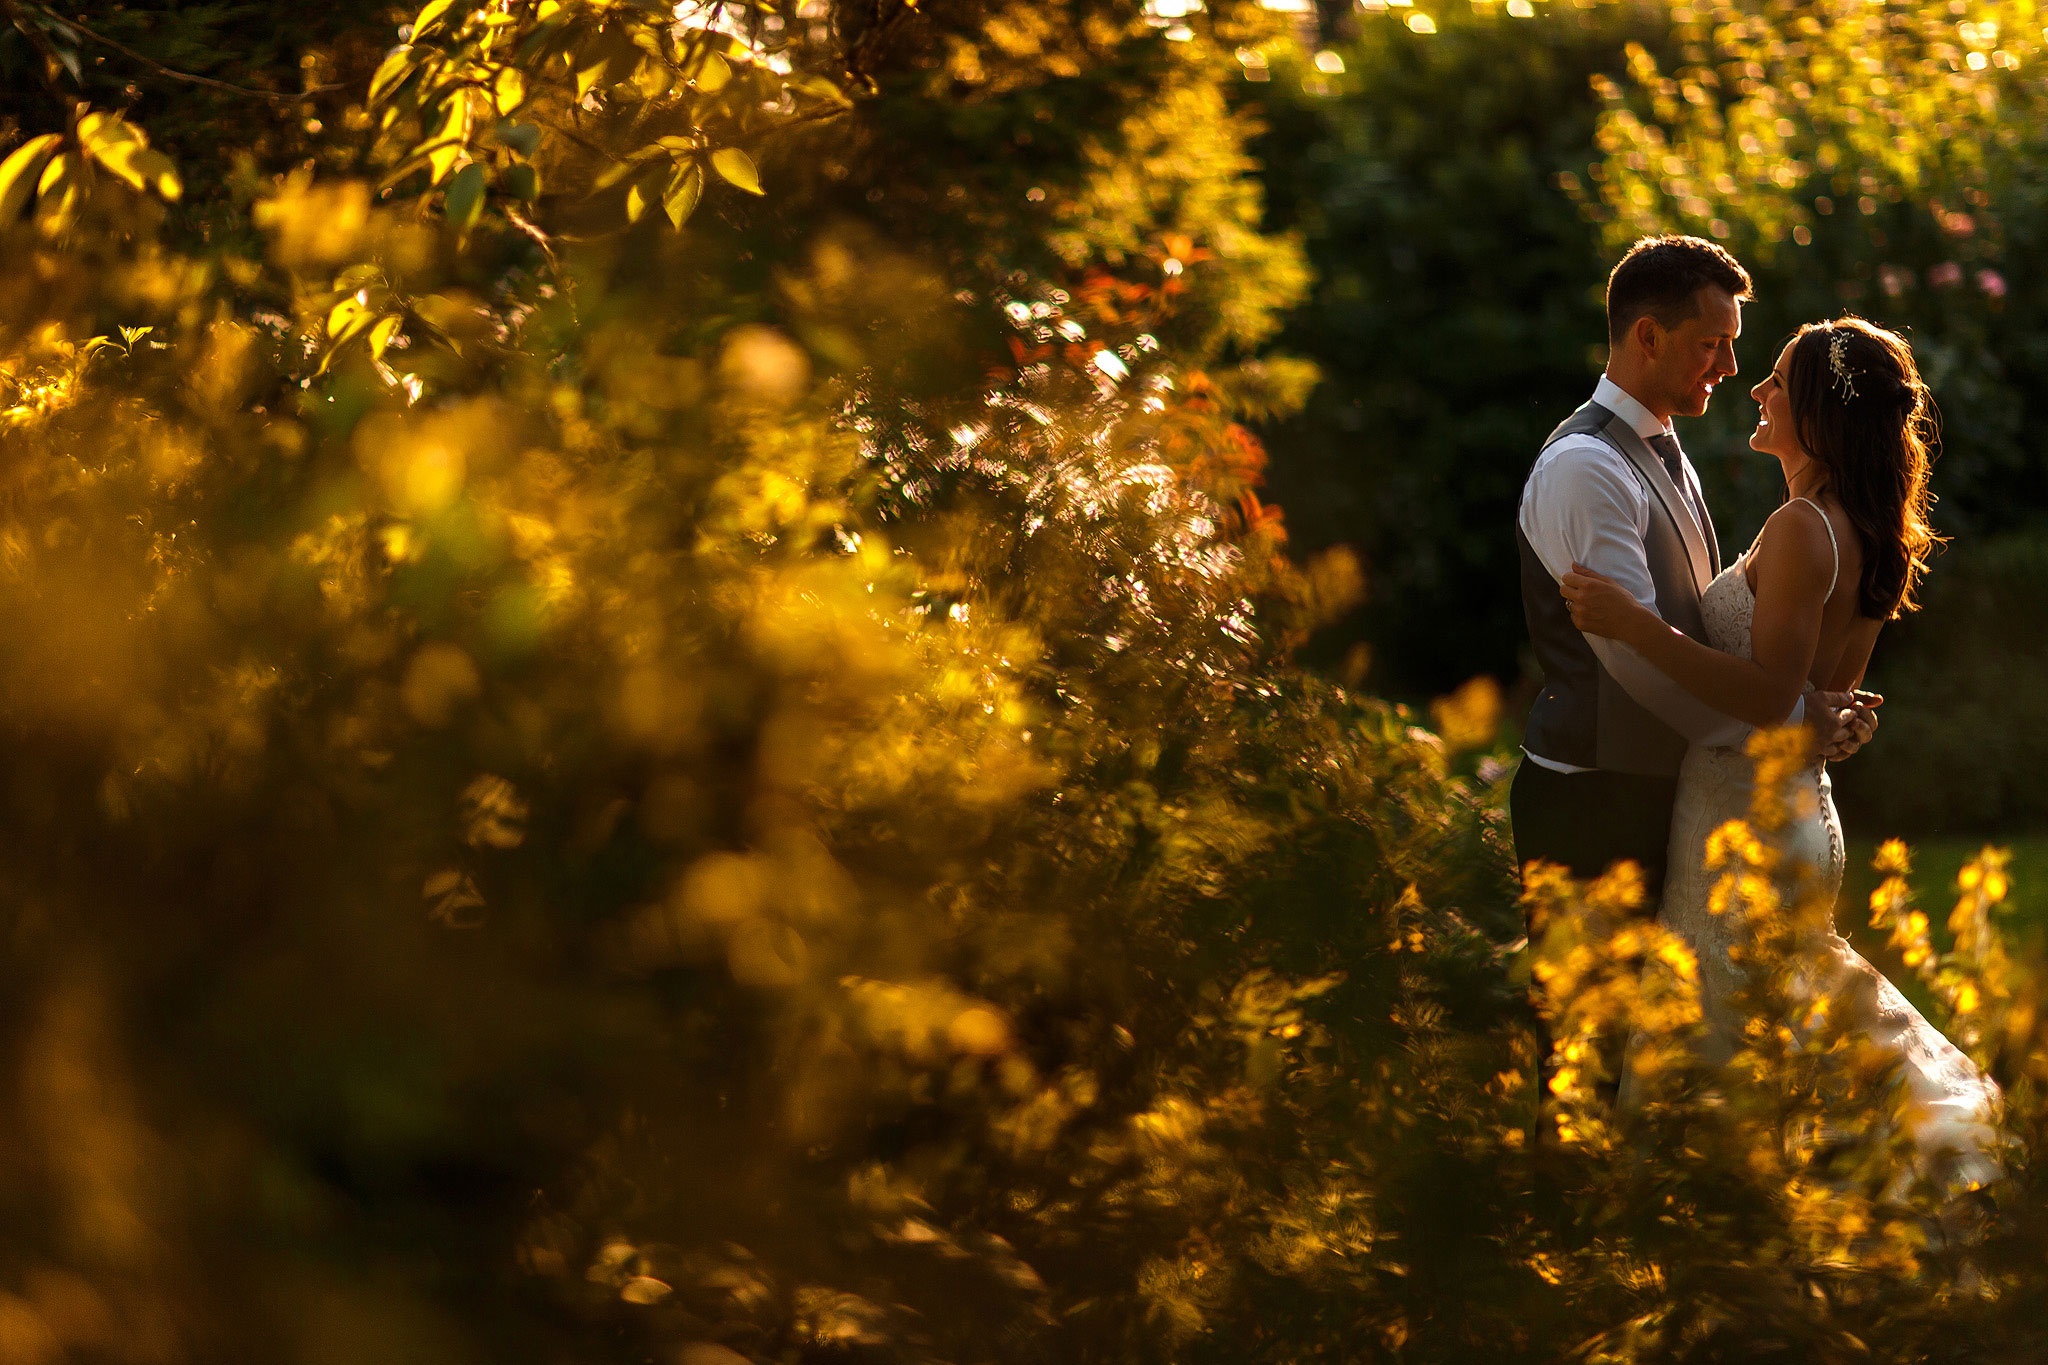 Bride and groom in golden hour in the garden at Shireburn Arms wedding | Shireburn Arms Wedding Photography